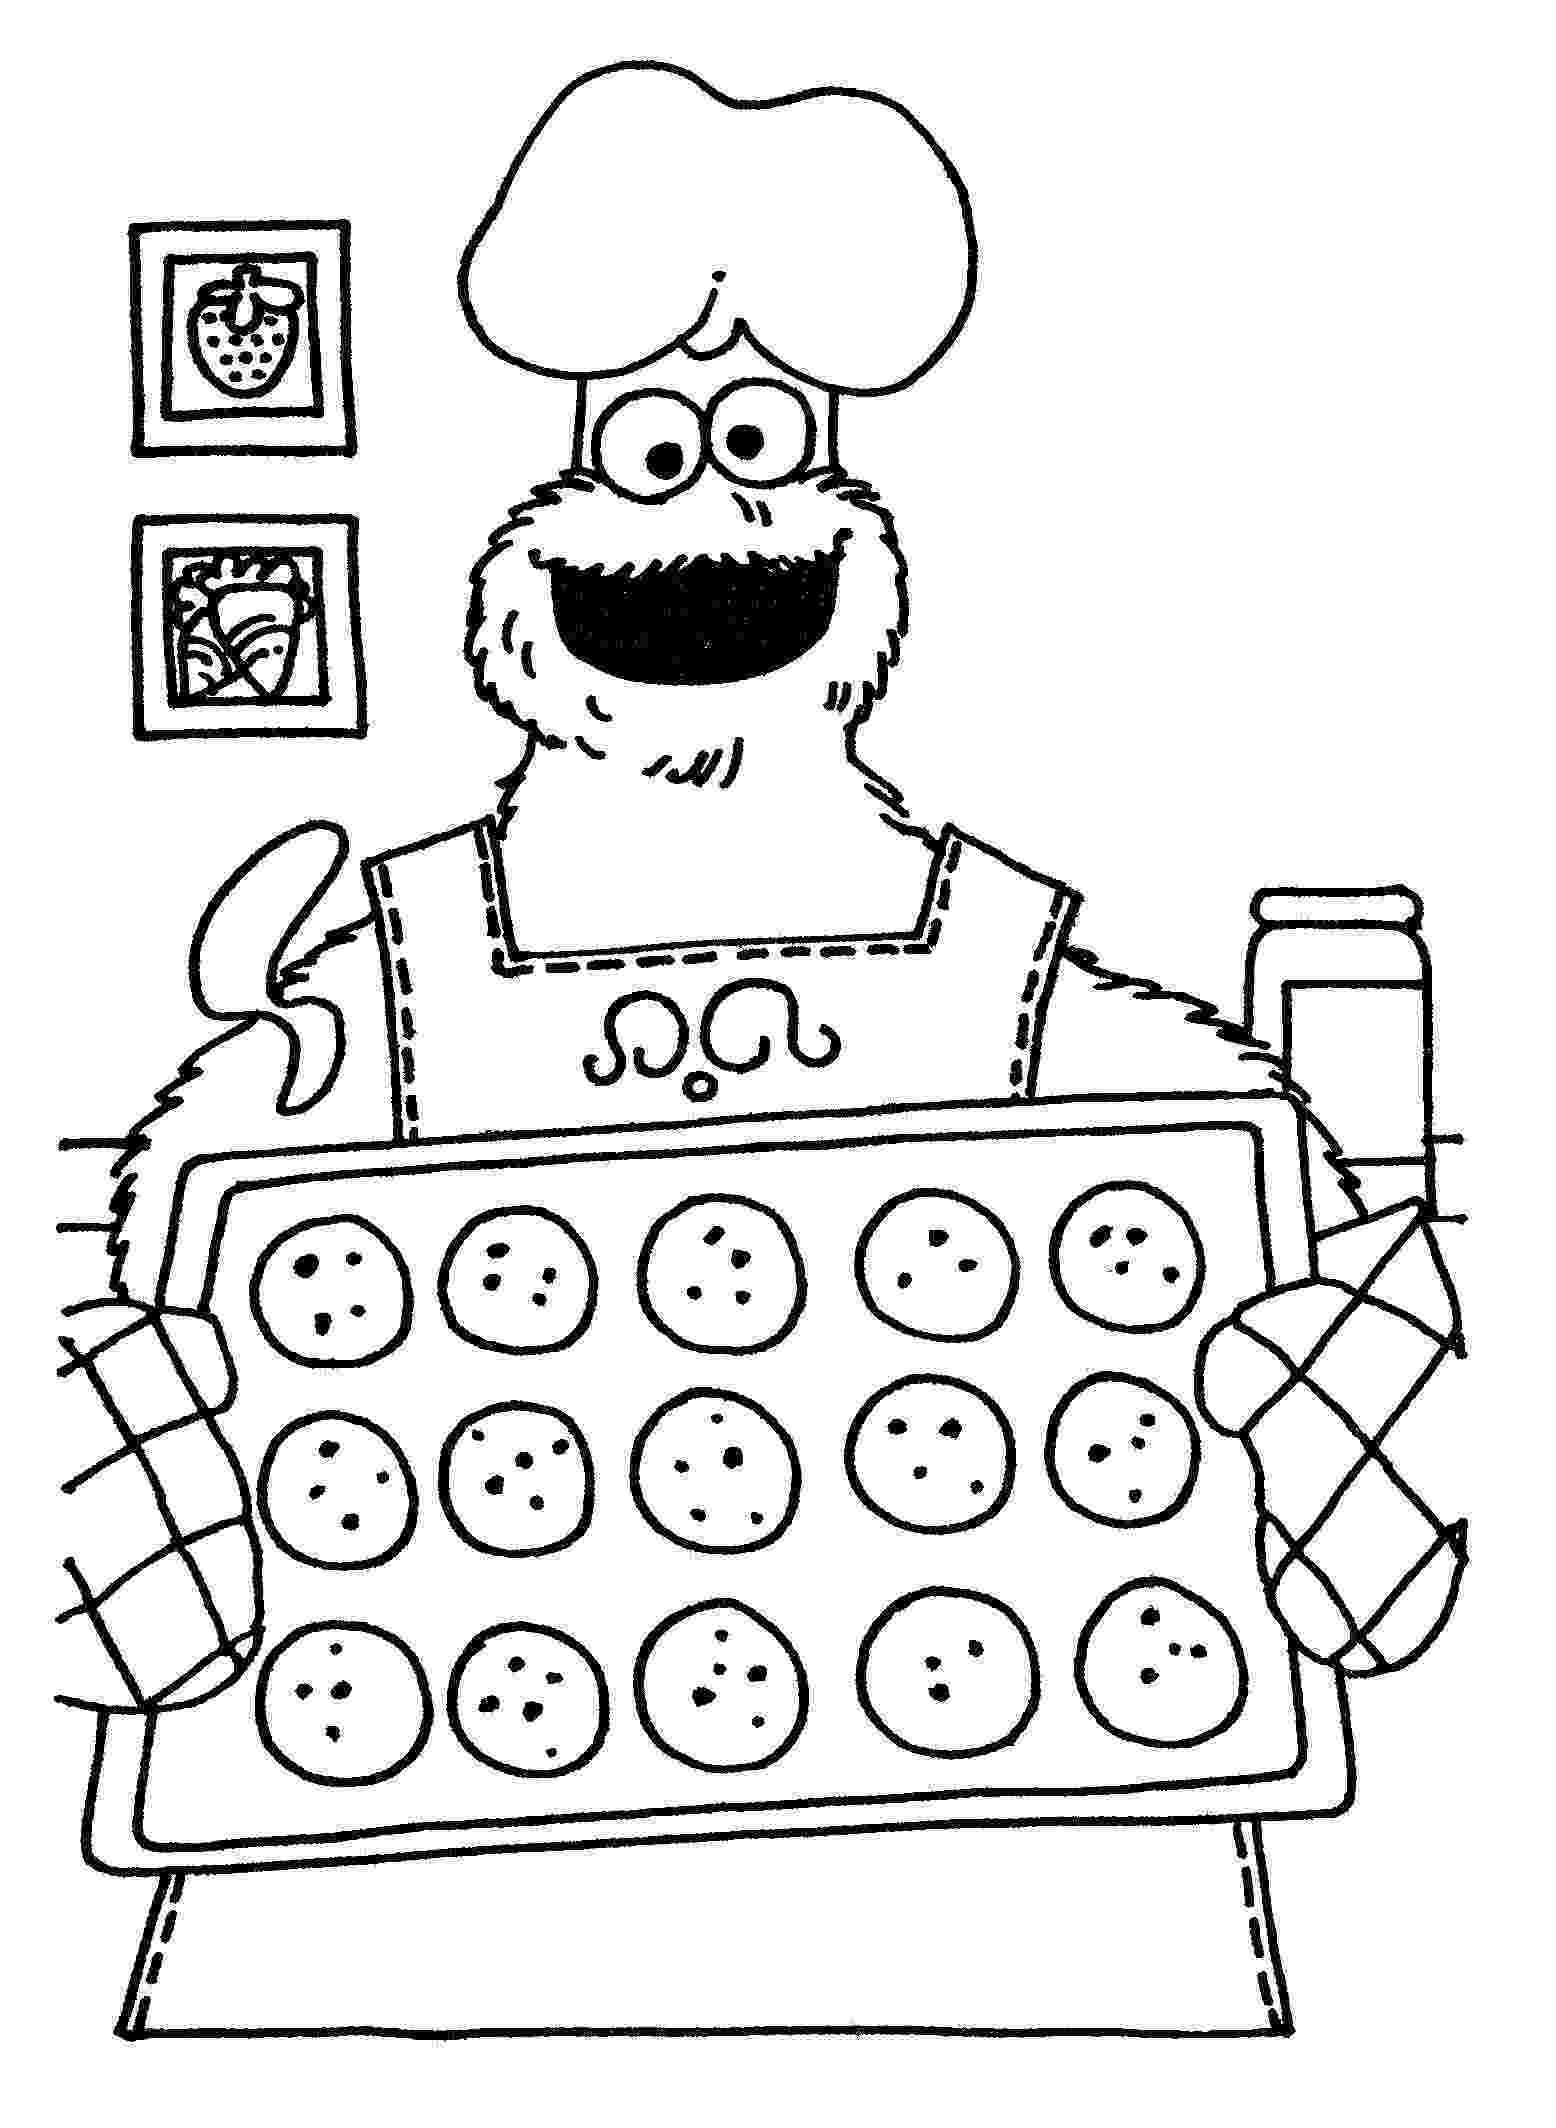 baking coloring pages cookie monster baking coloring pages monster pages baking coloring